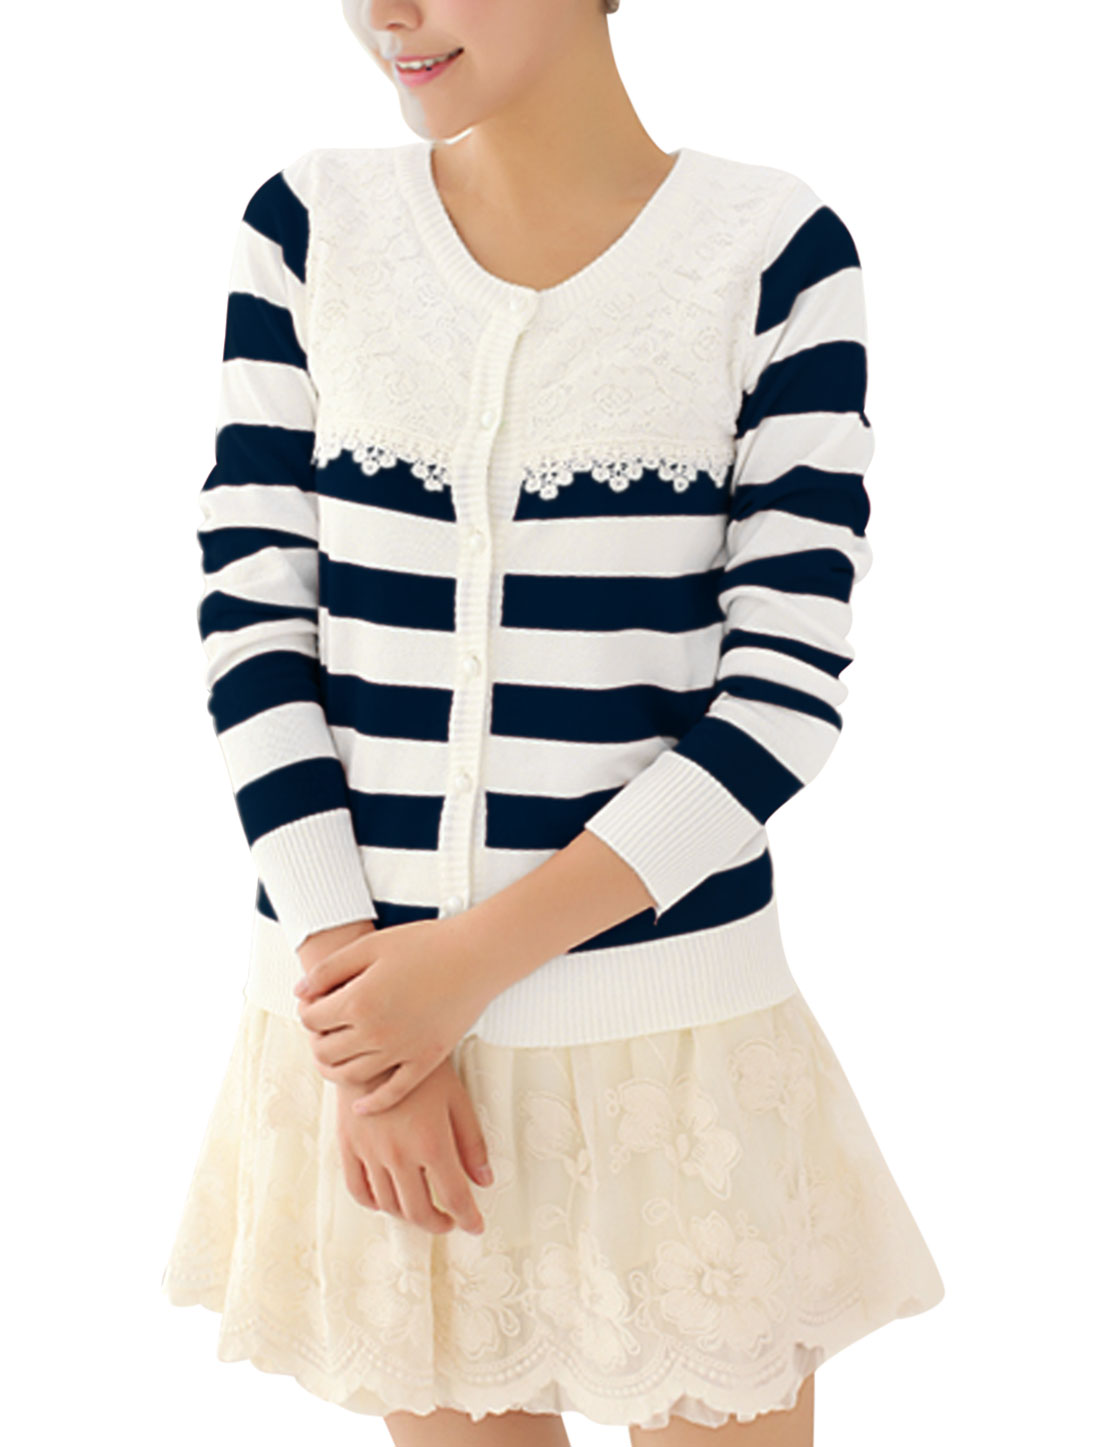 Lady Stripes Pattern Crochet Patchwork Leisure Knit Shirt Navy Blue White S